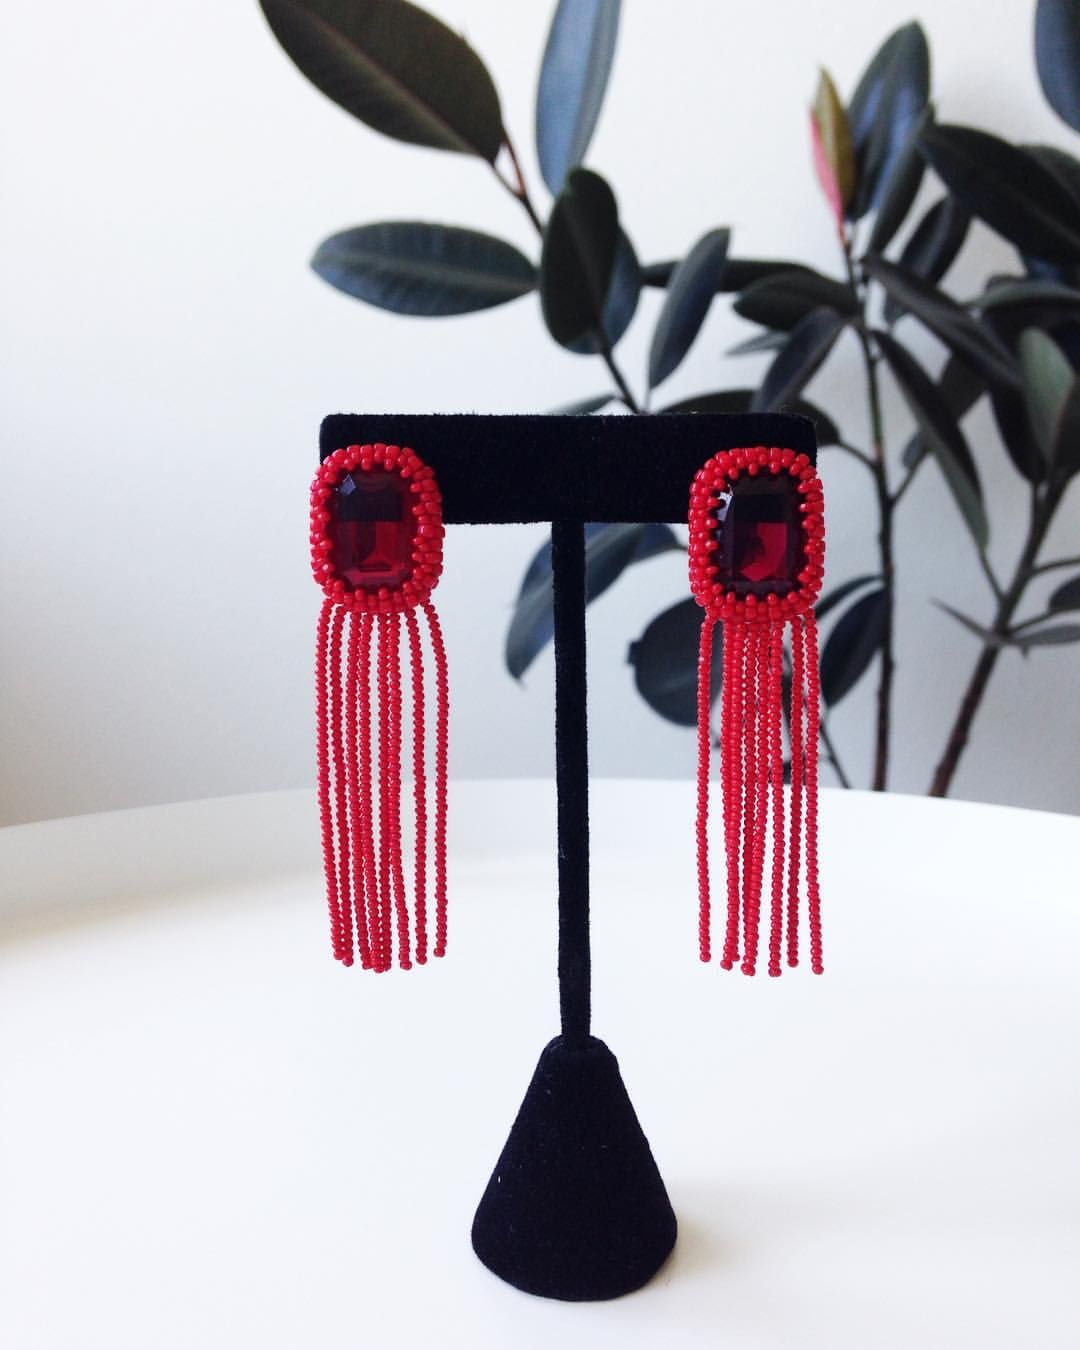 7e0854e7f Beaded Fringe Statement Earrings, handmade in Austin, Texas. These are a  one of a kind pair of earrings made with vintage glass beads.